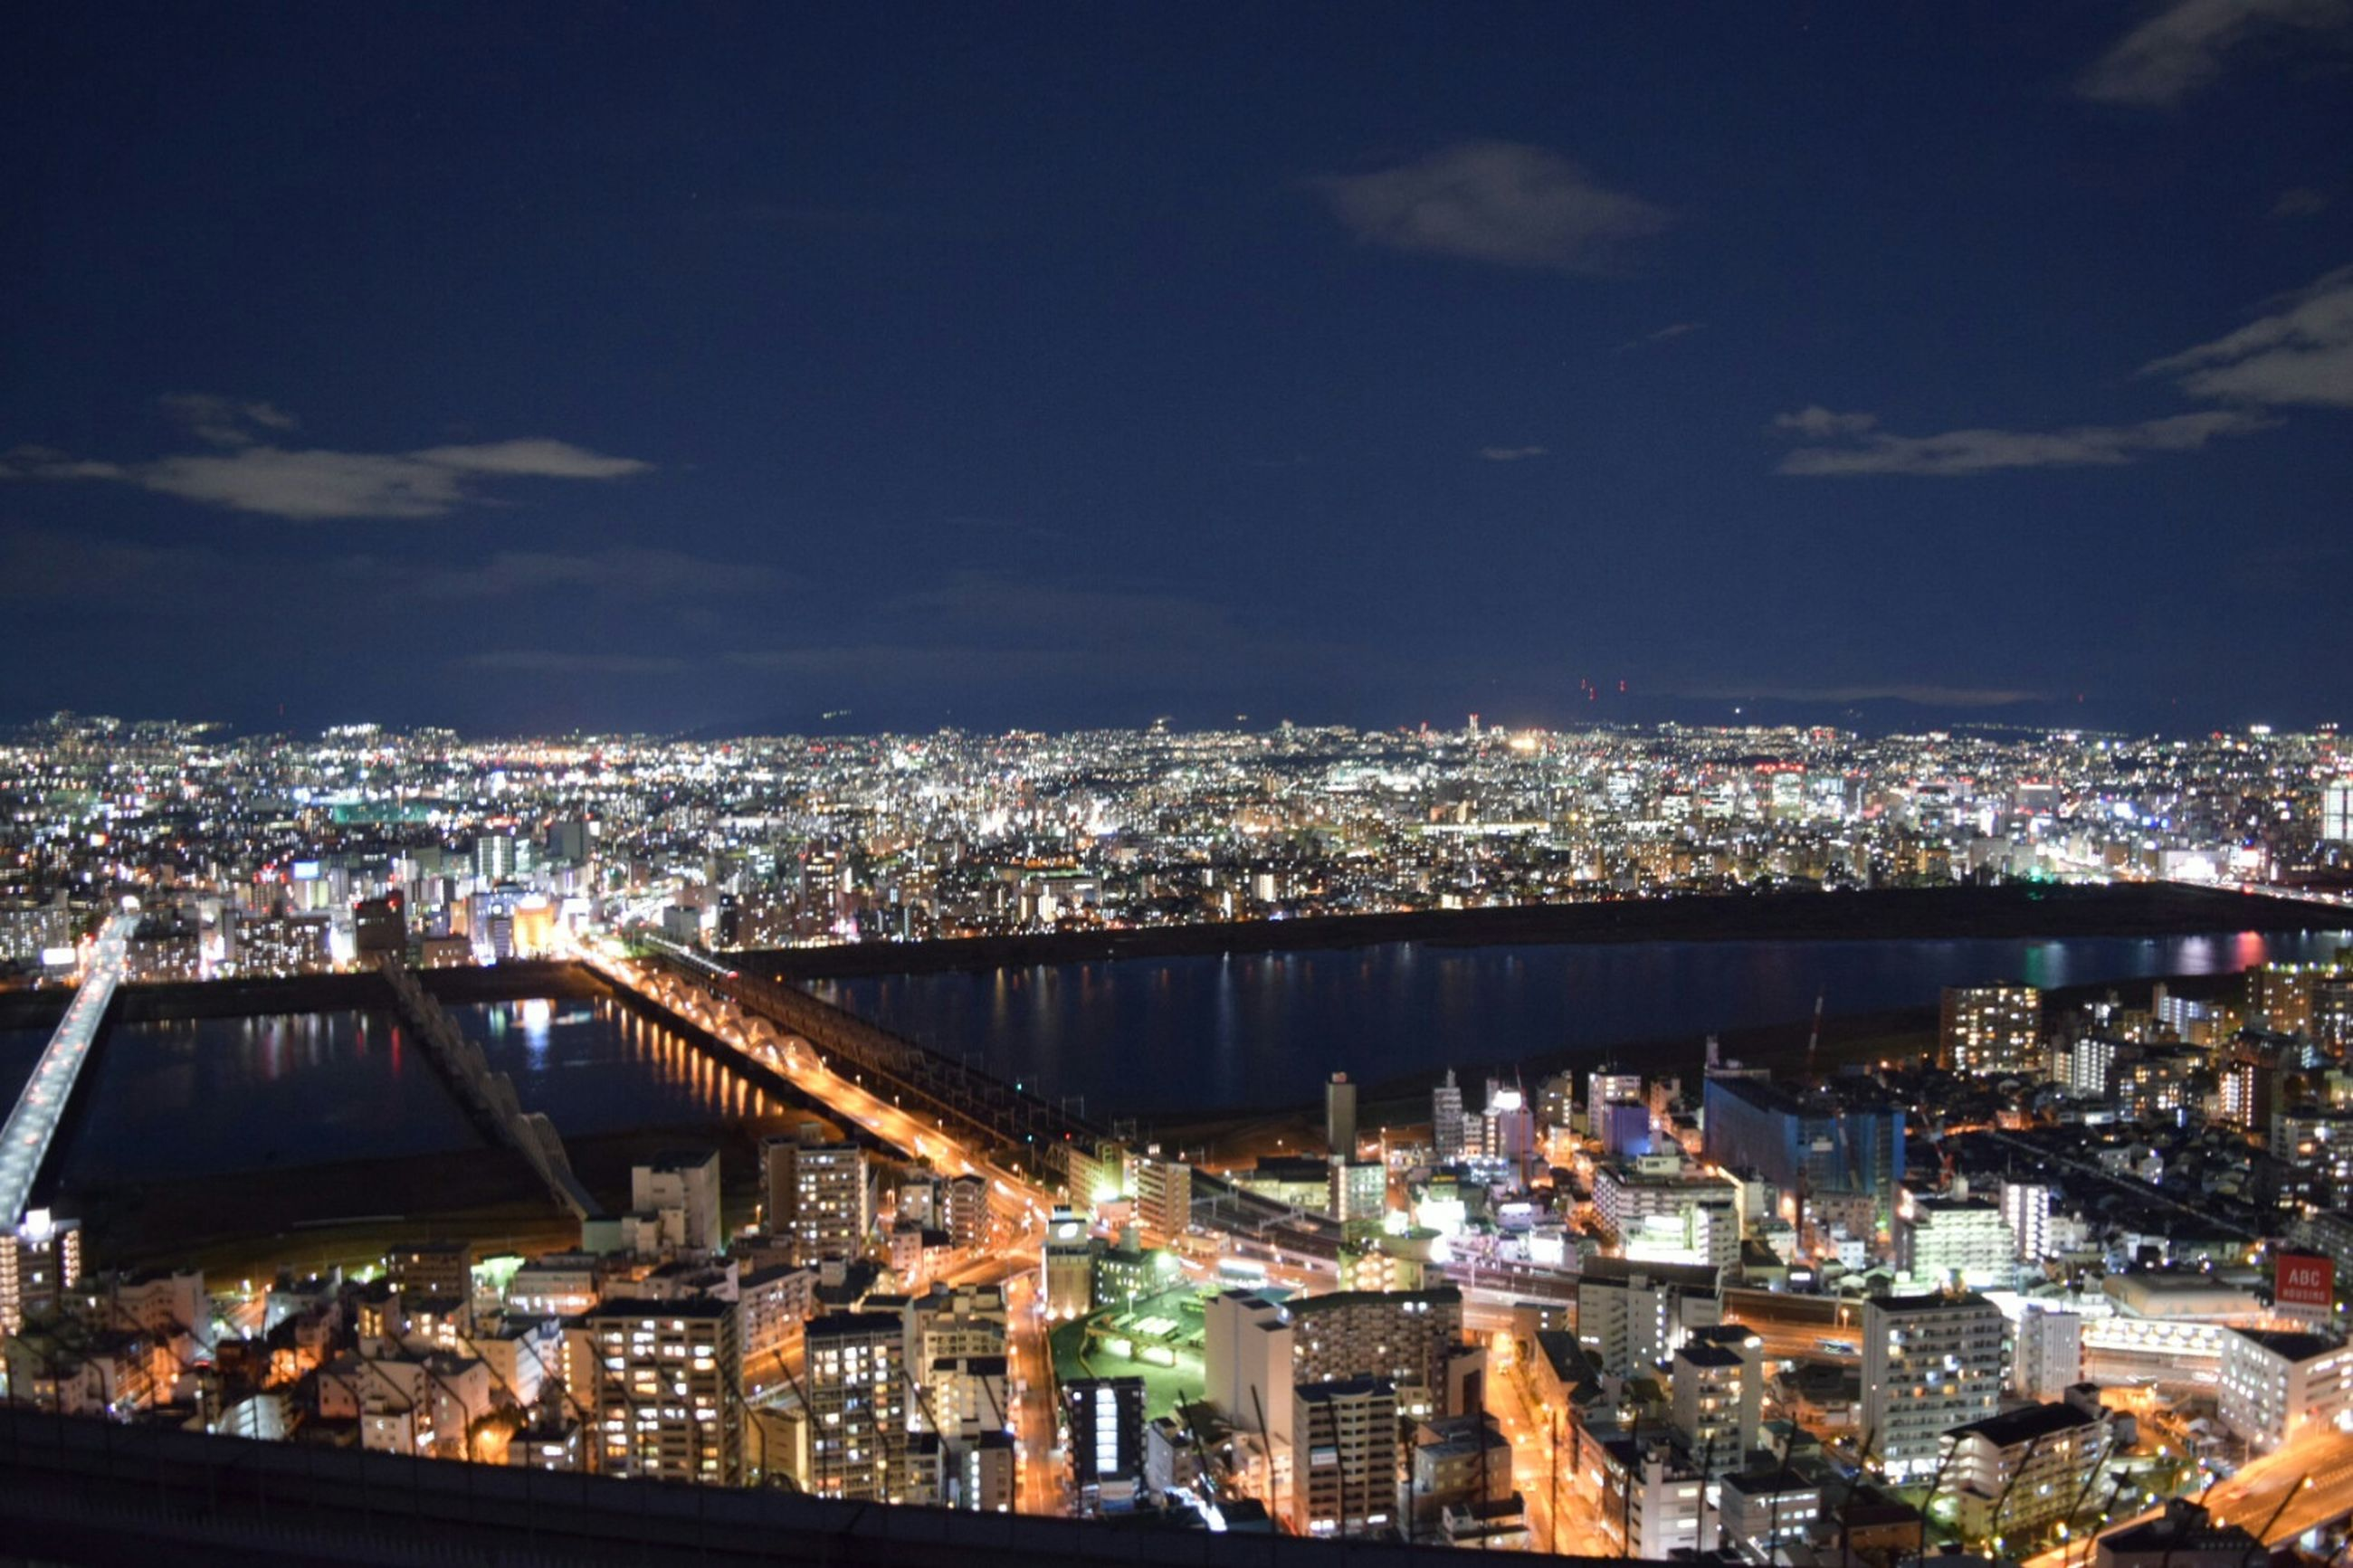 cityscape, city, architecture, illuminated, built structure, building exterior, crowded, night, sky, high angle view, residential district, modern, city life, skyscraper, river, capital cities, aerial view, residential building, travel destinations, water